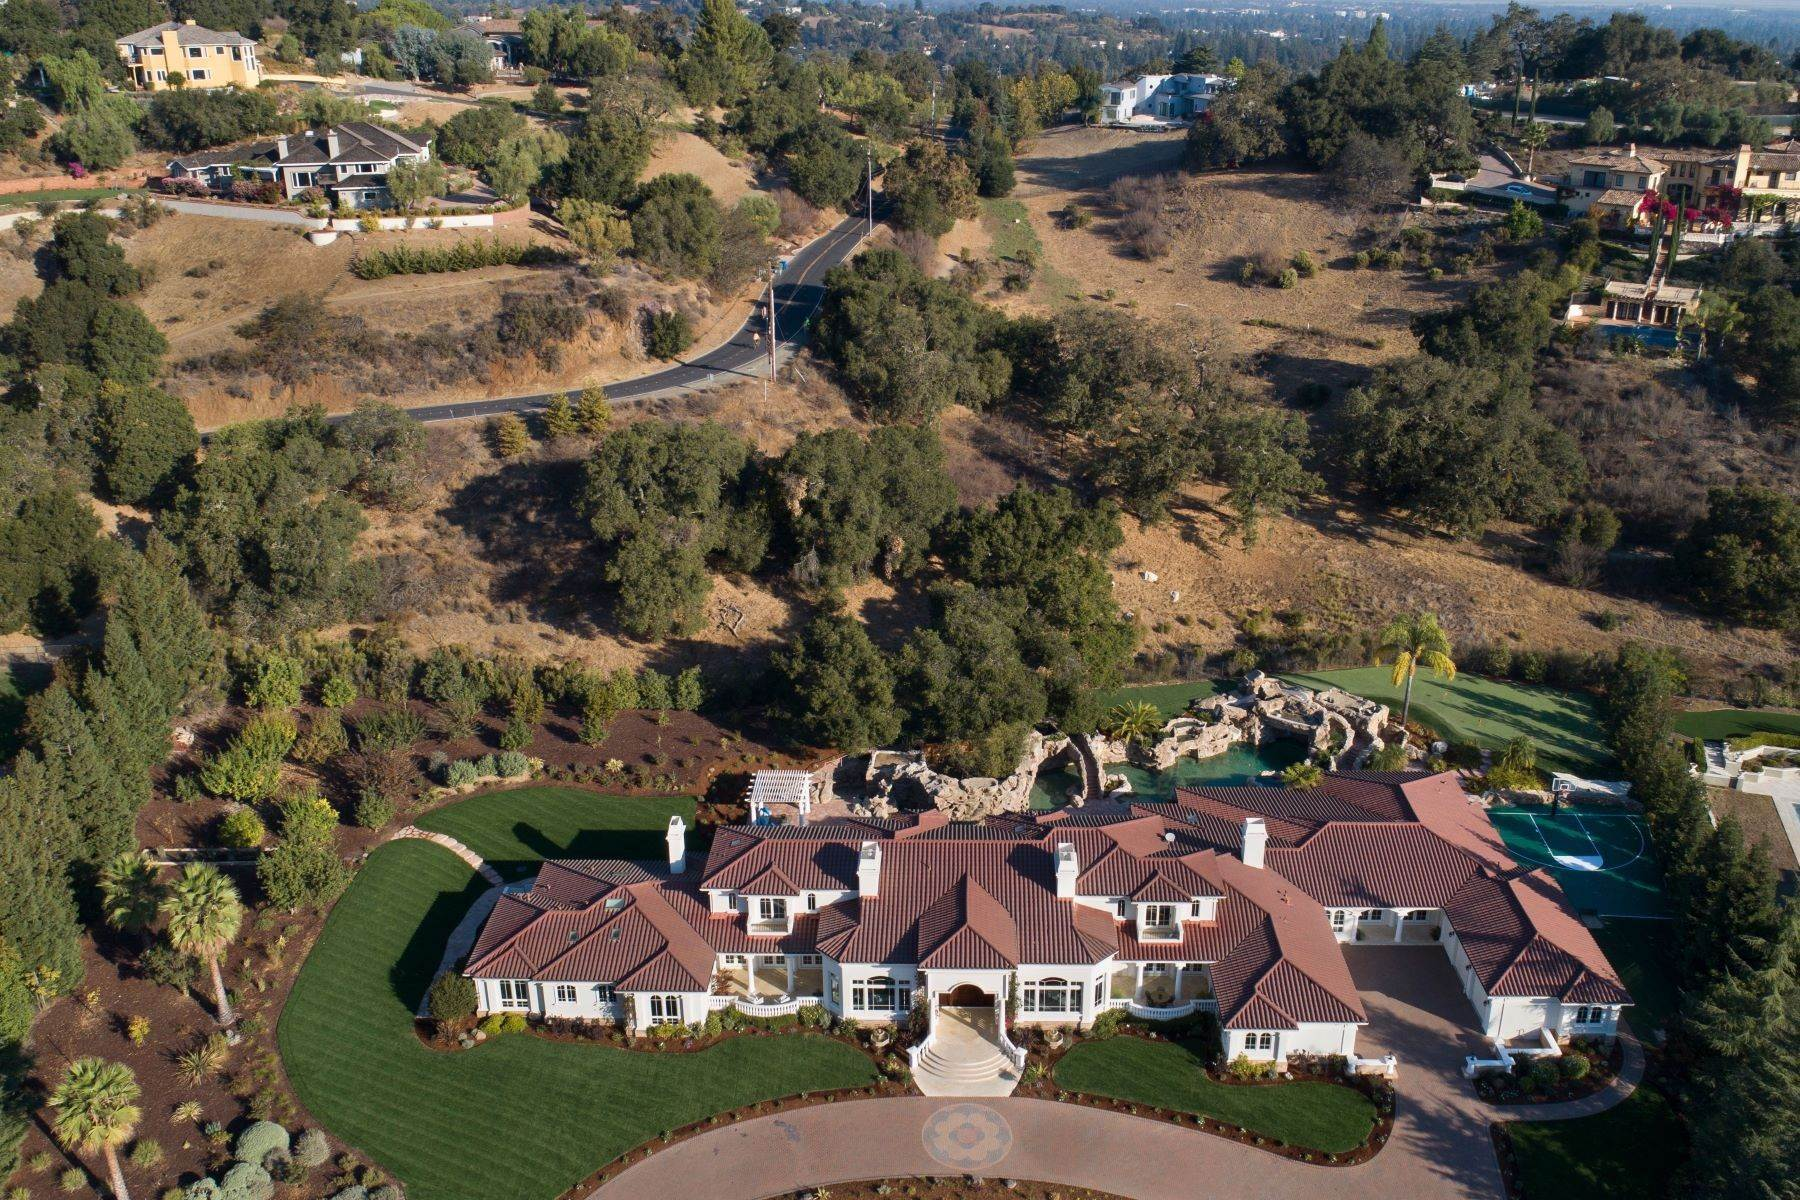 Property for Sale at Sprawling Resort-Like Estate 12160 Kate Drive Los Altos Hills, California 94022 United States